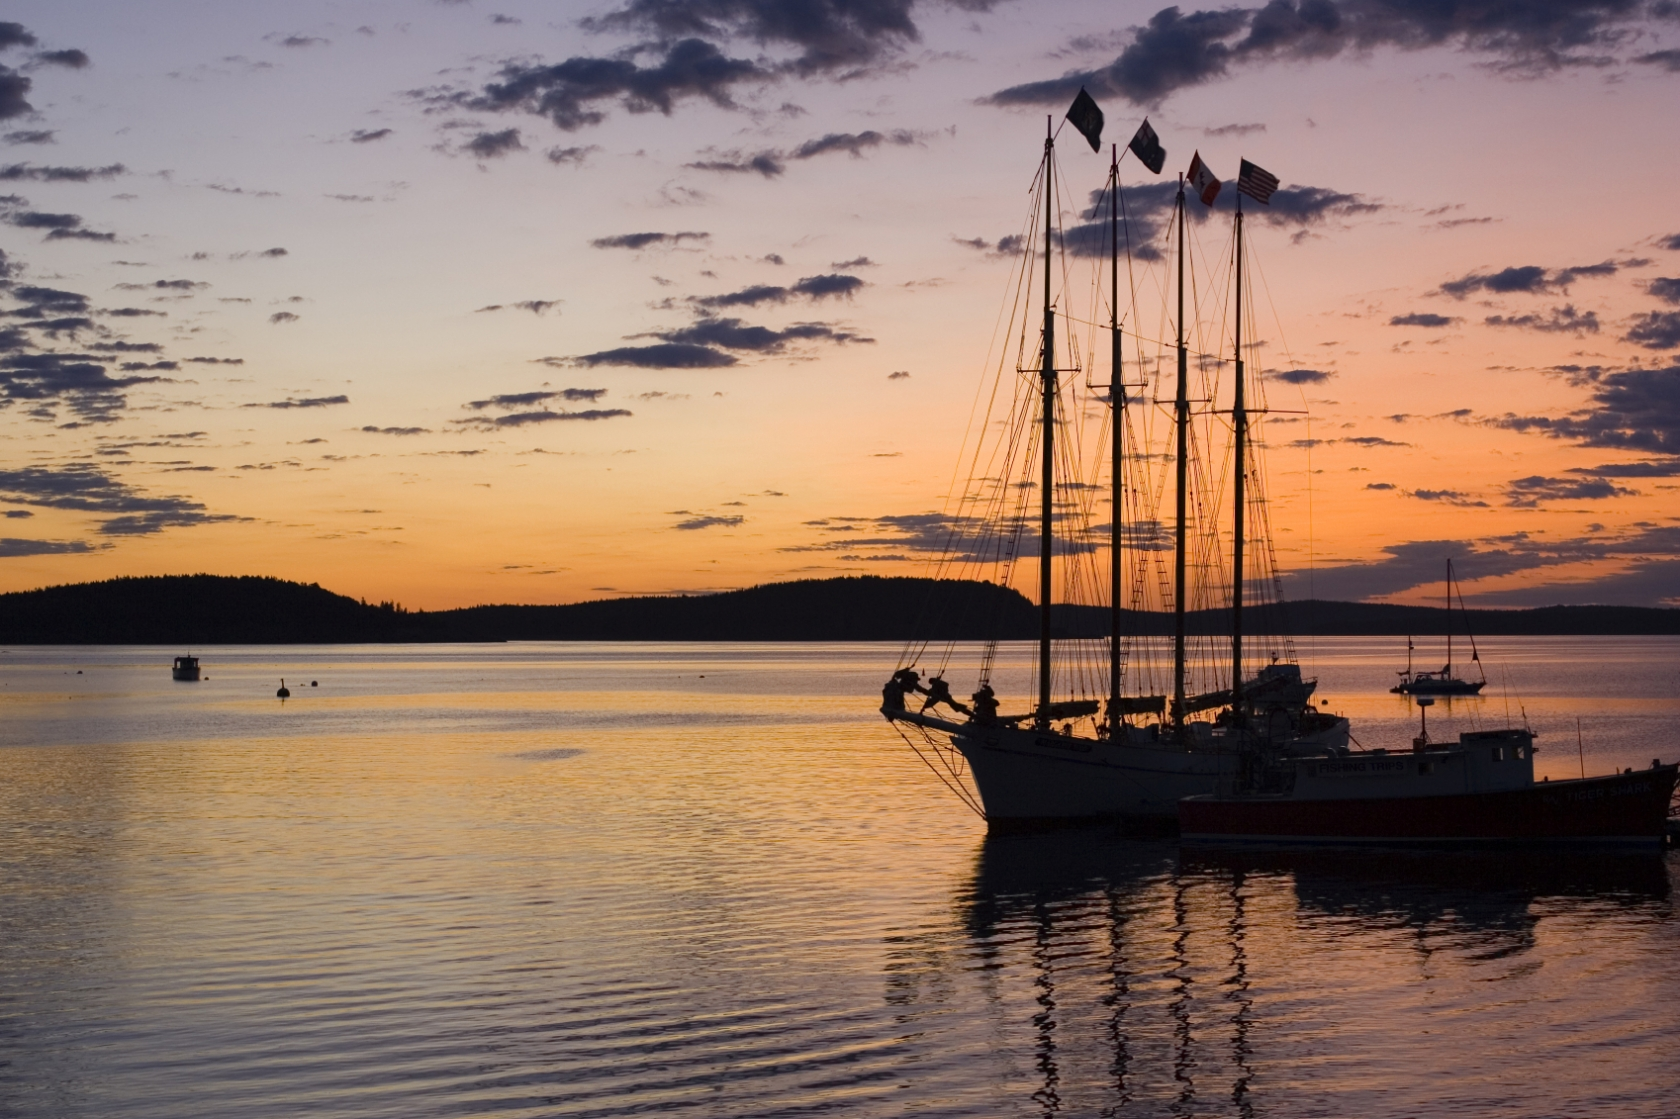 Colorful orange and purple sunset with the silhouette of a 3-masted sailboat docked at Acadia National Park